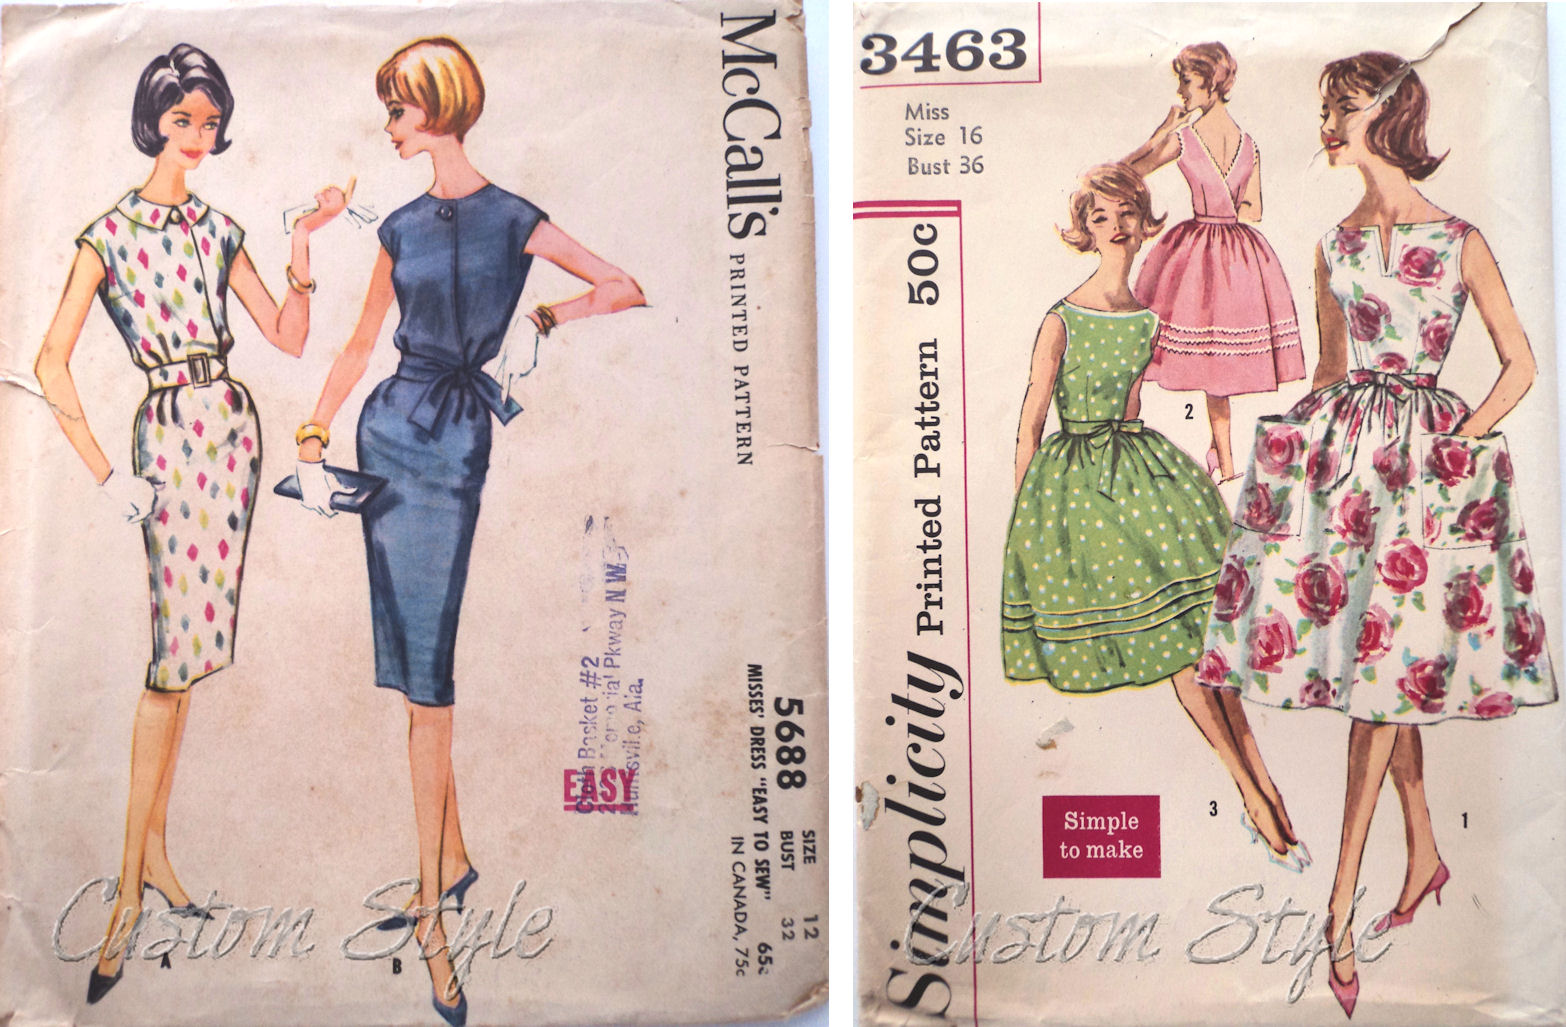 Dating simplicity sewing patterns, jenna harrison lesbian clip